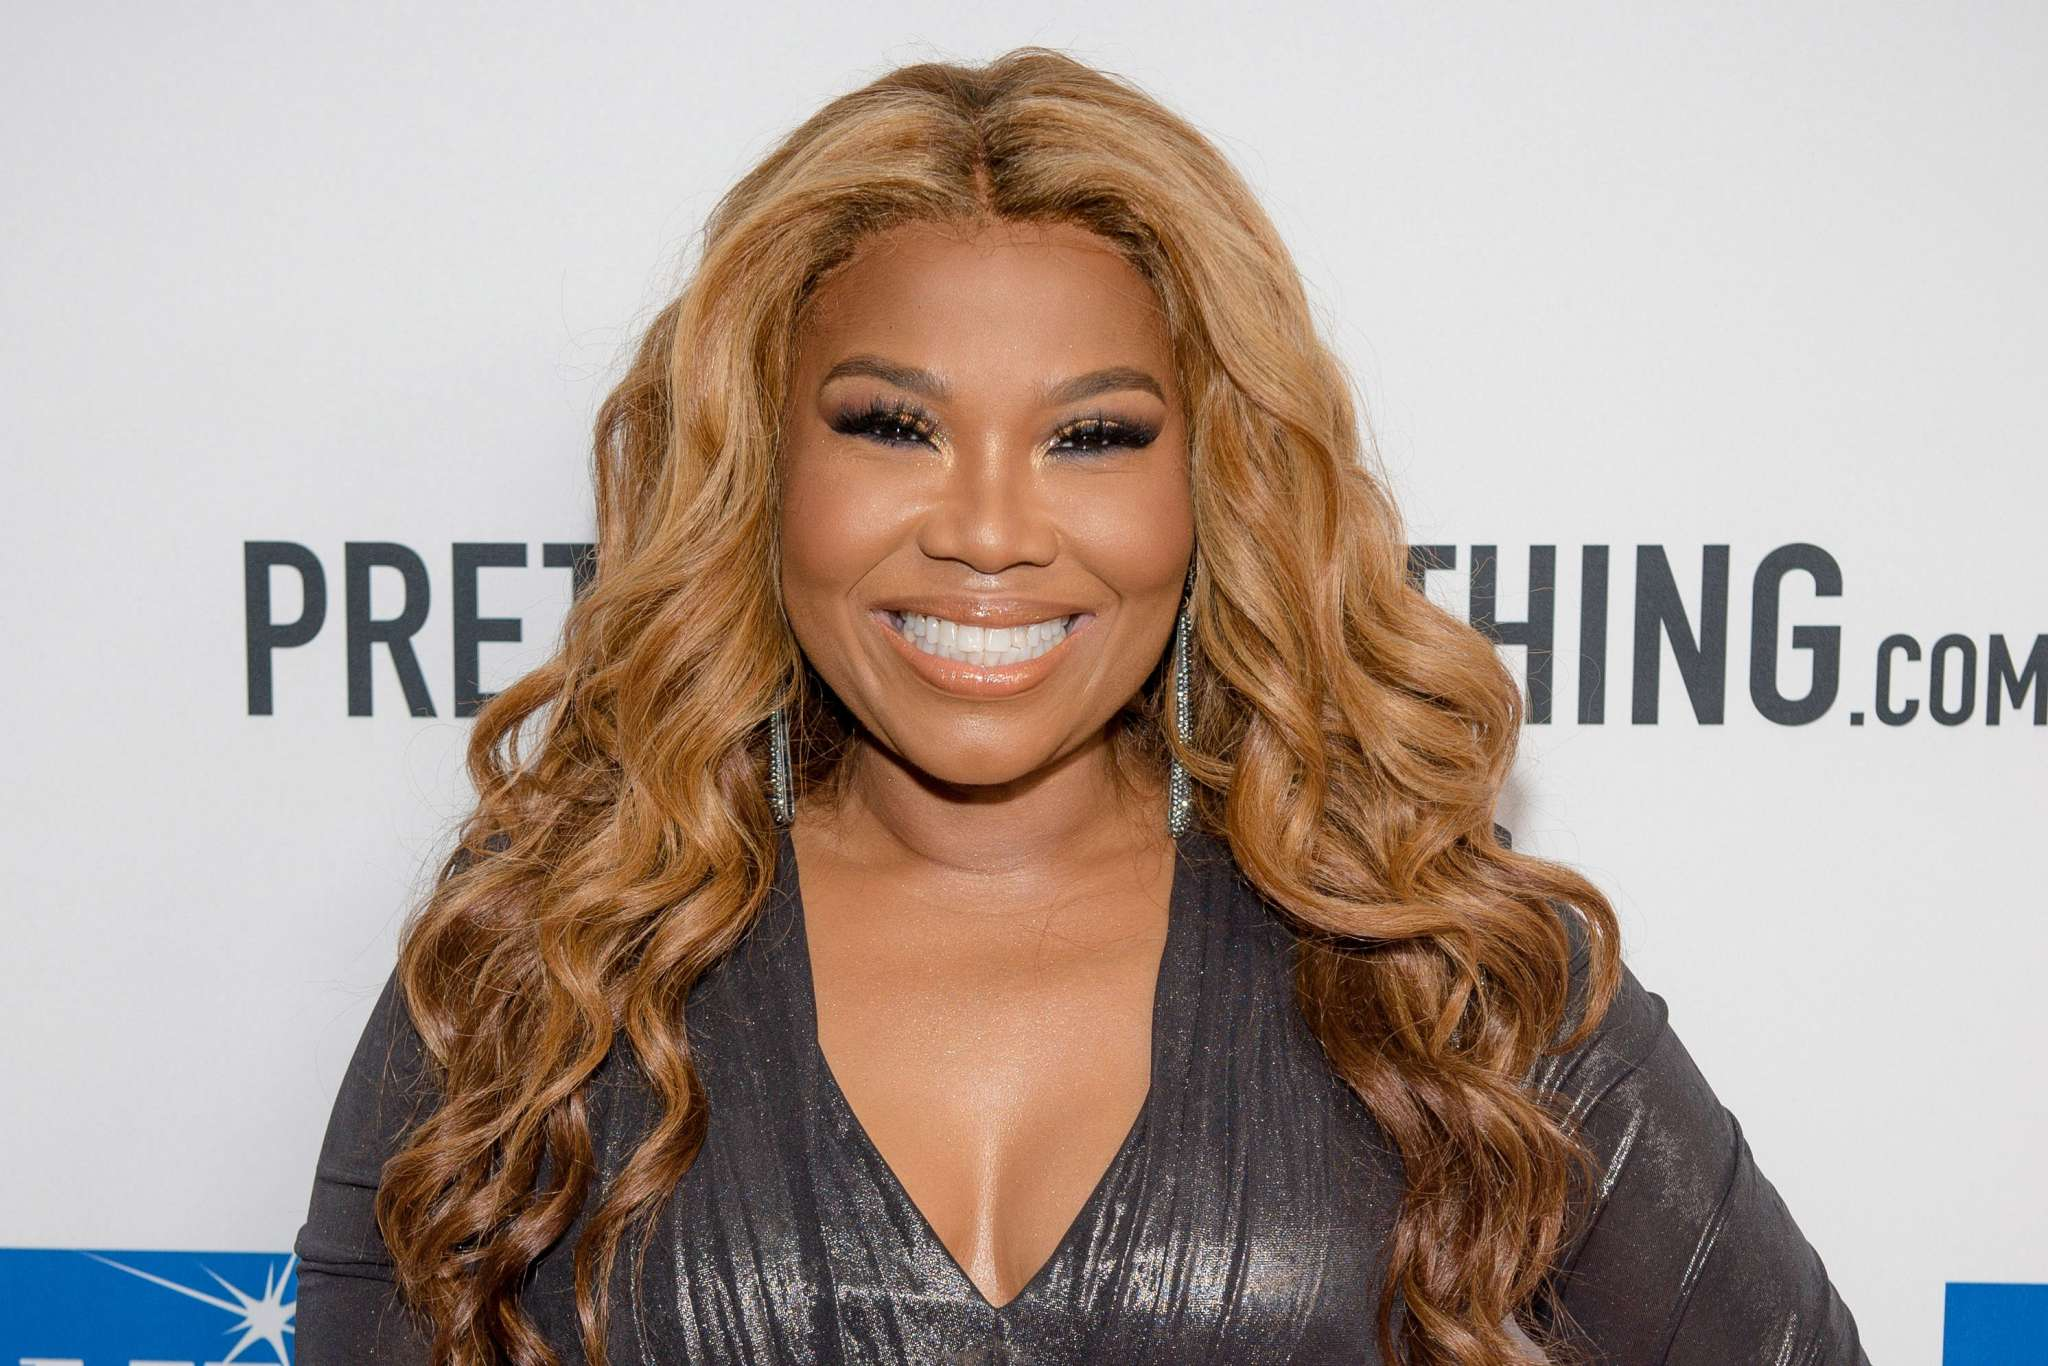 mona-scott-young-says-she-is-scrutinized-differently-when-compared-to-andy-cohen